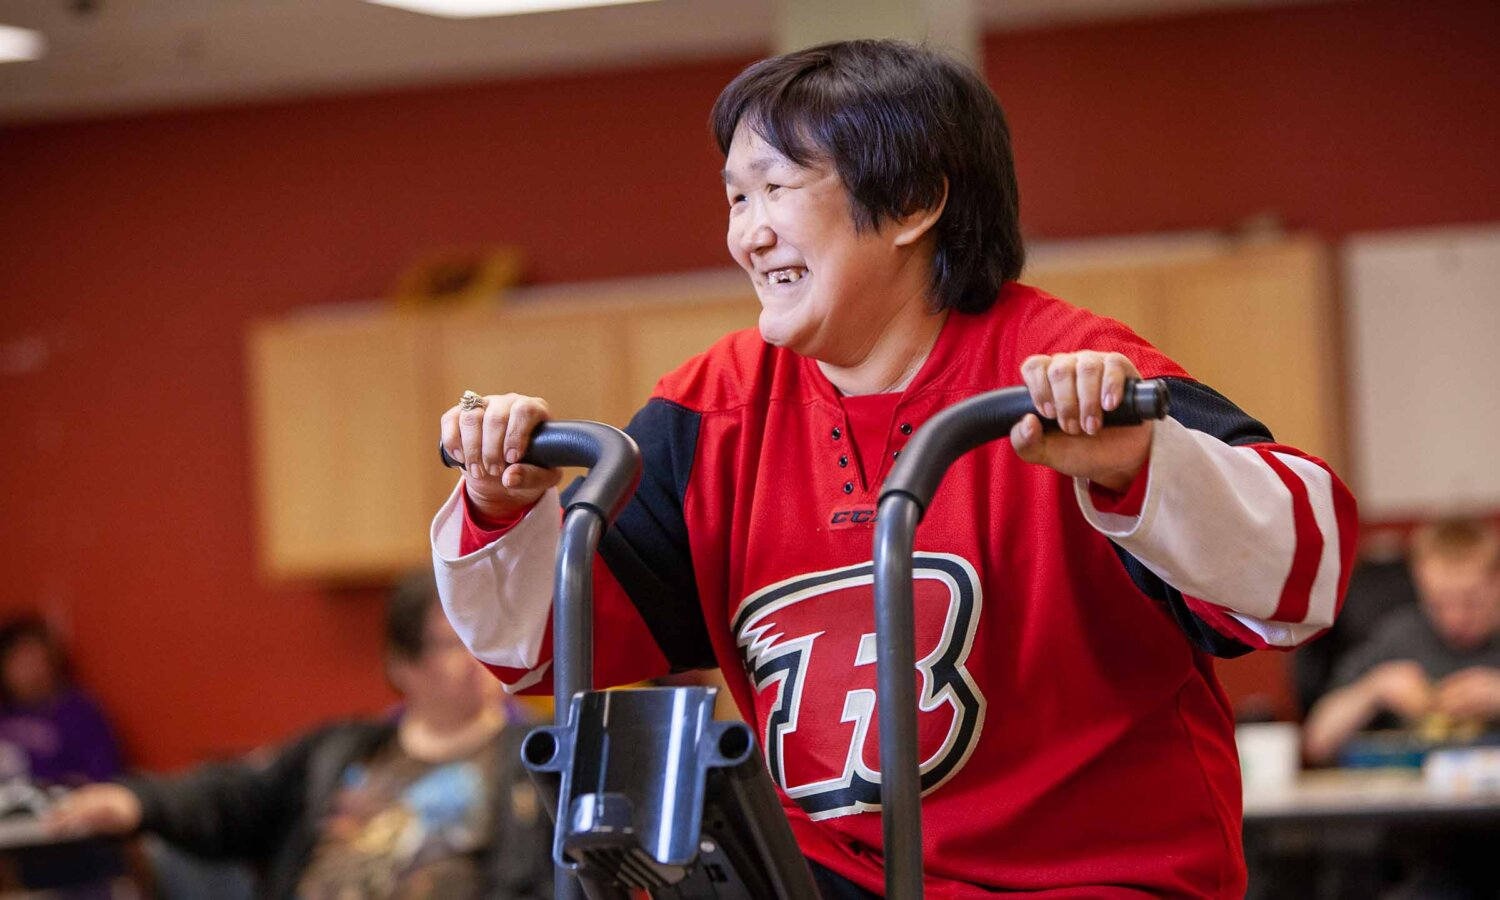 woman smiles while riding stationary bike